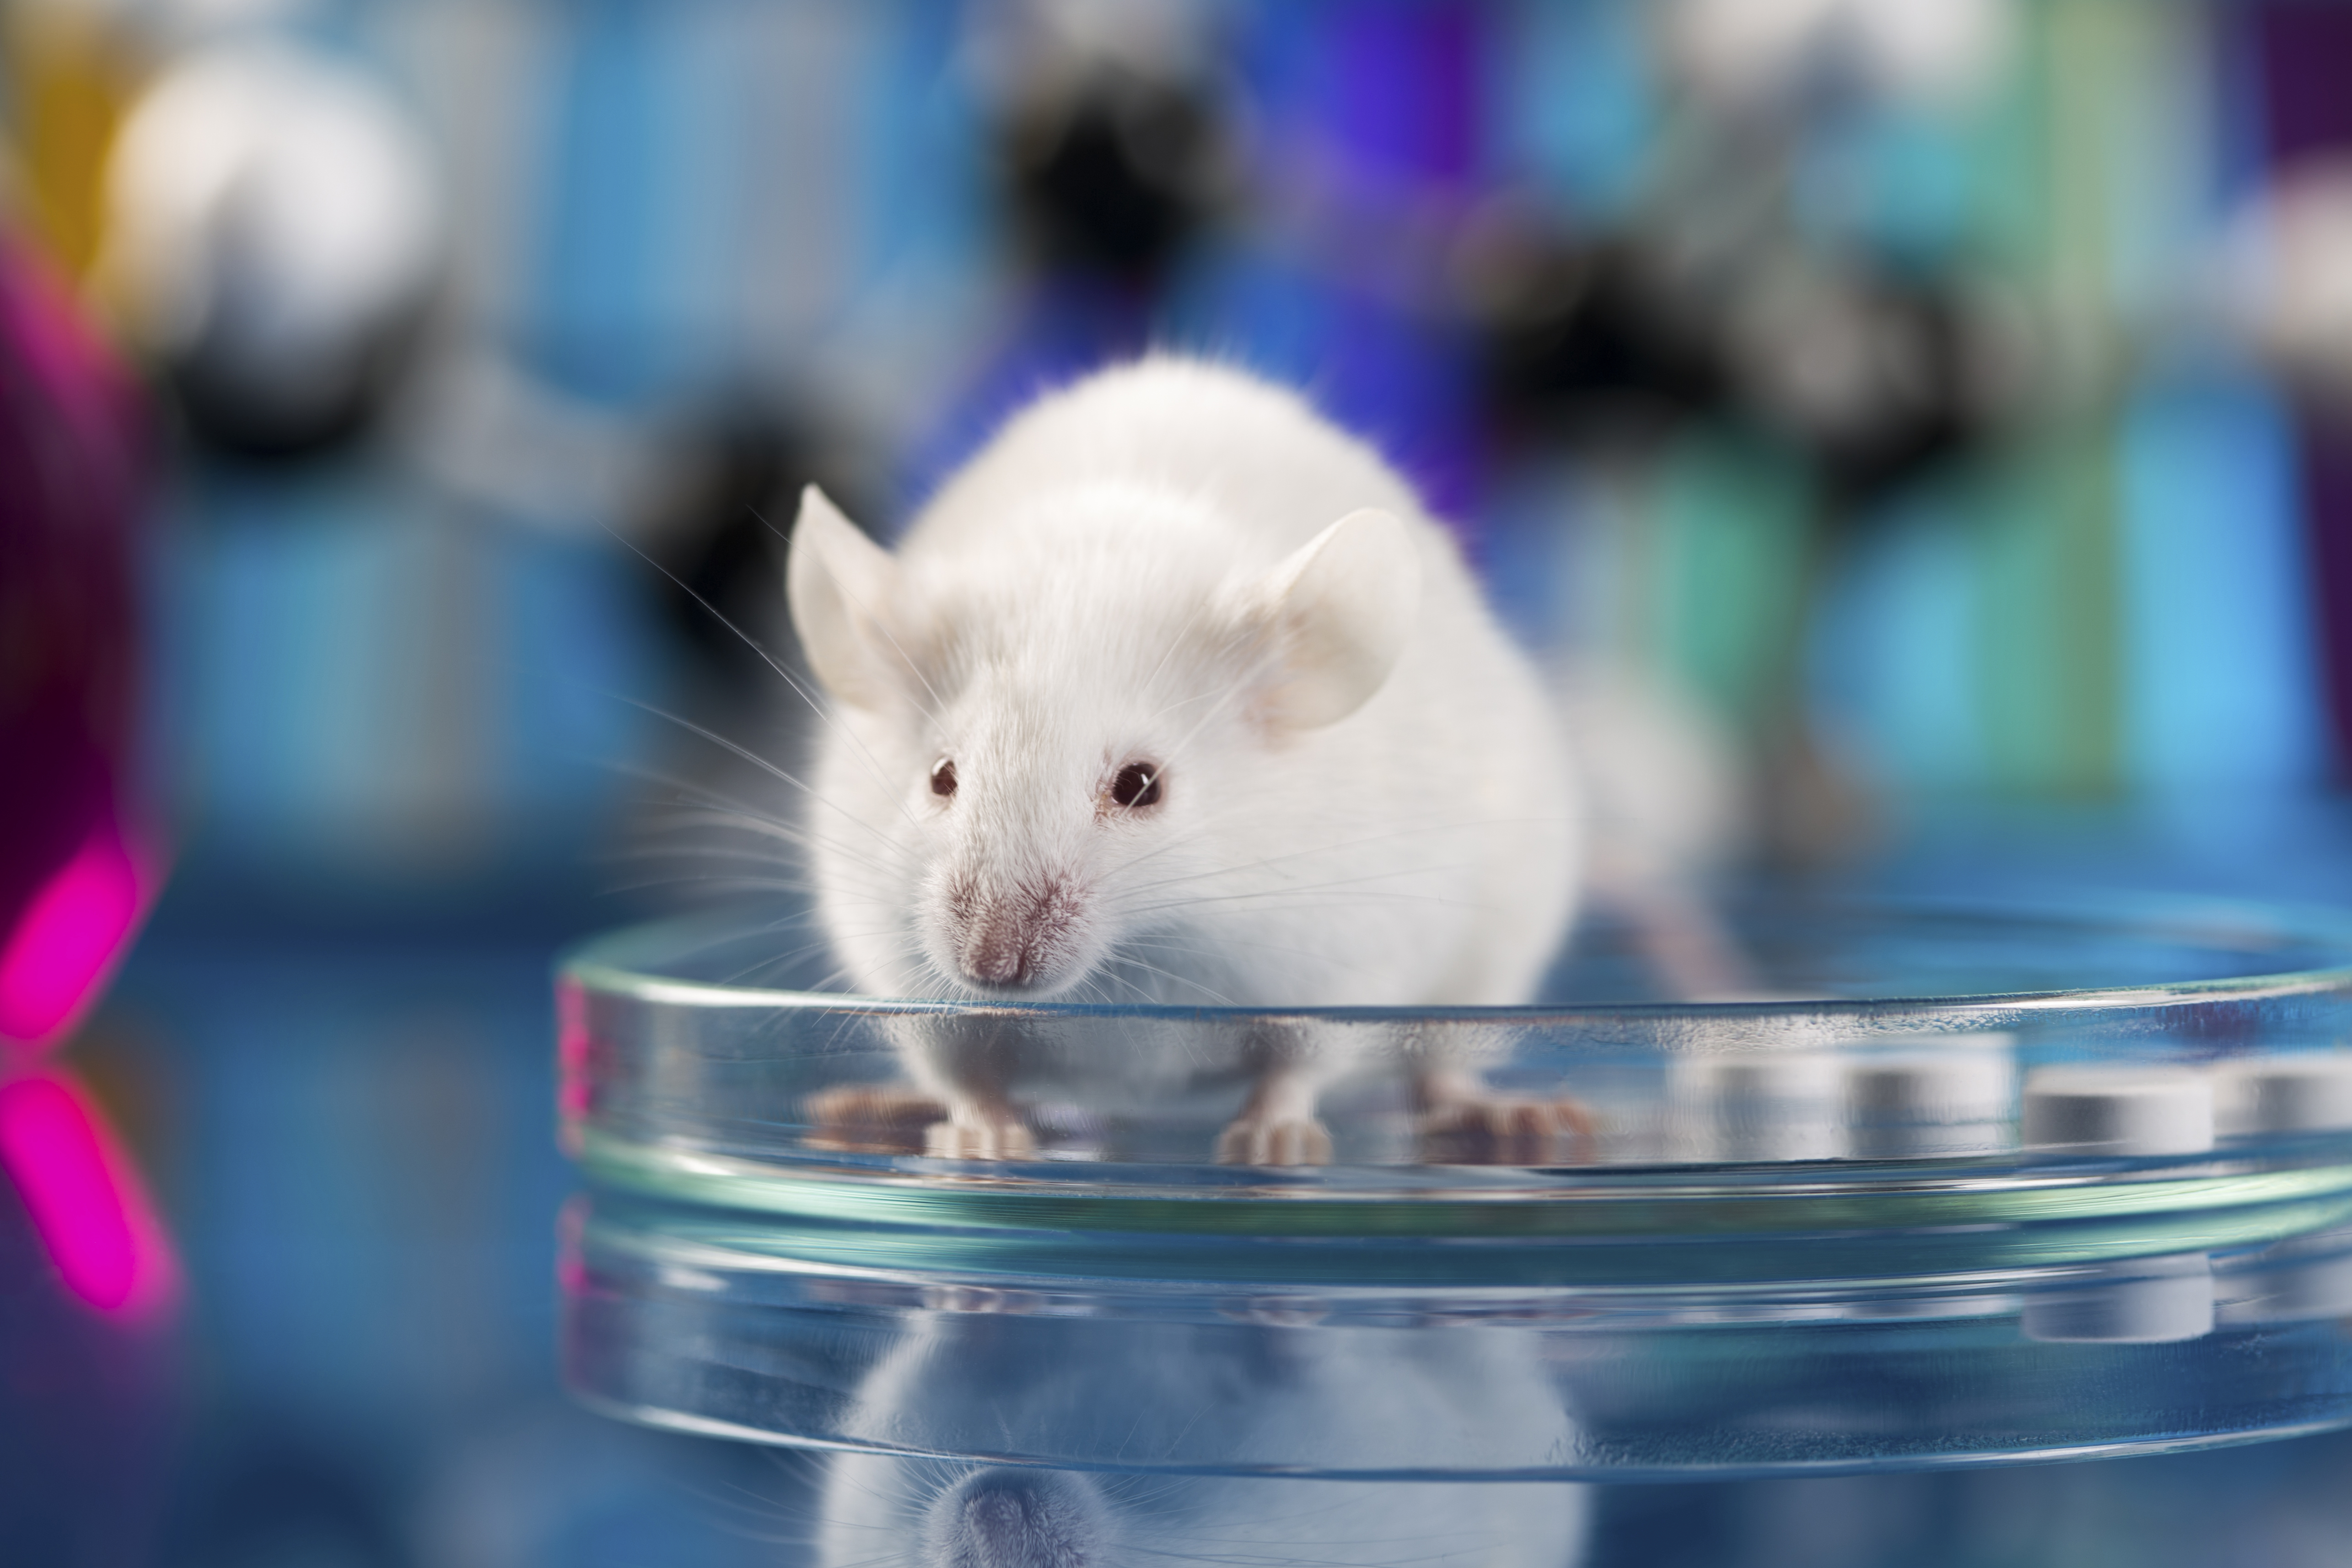 Mouse in a petri dish